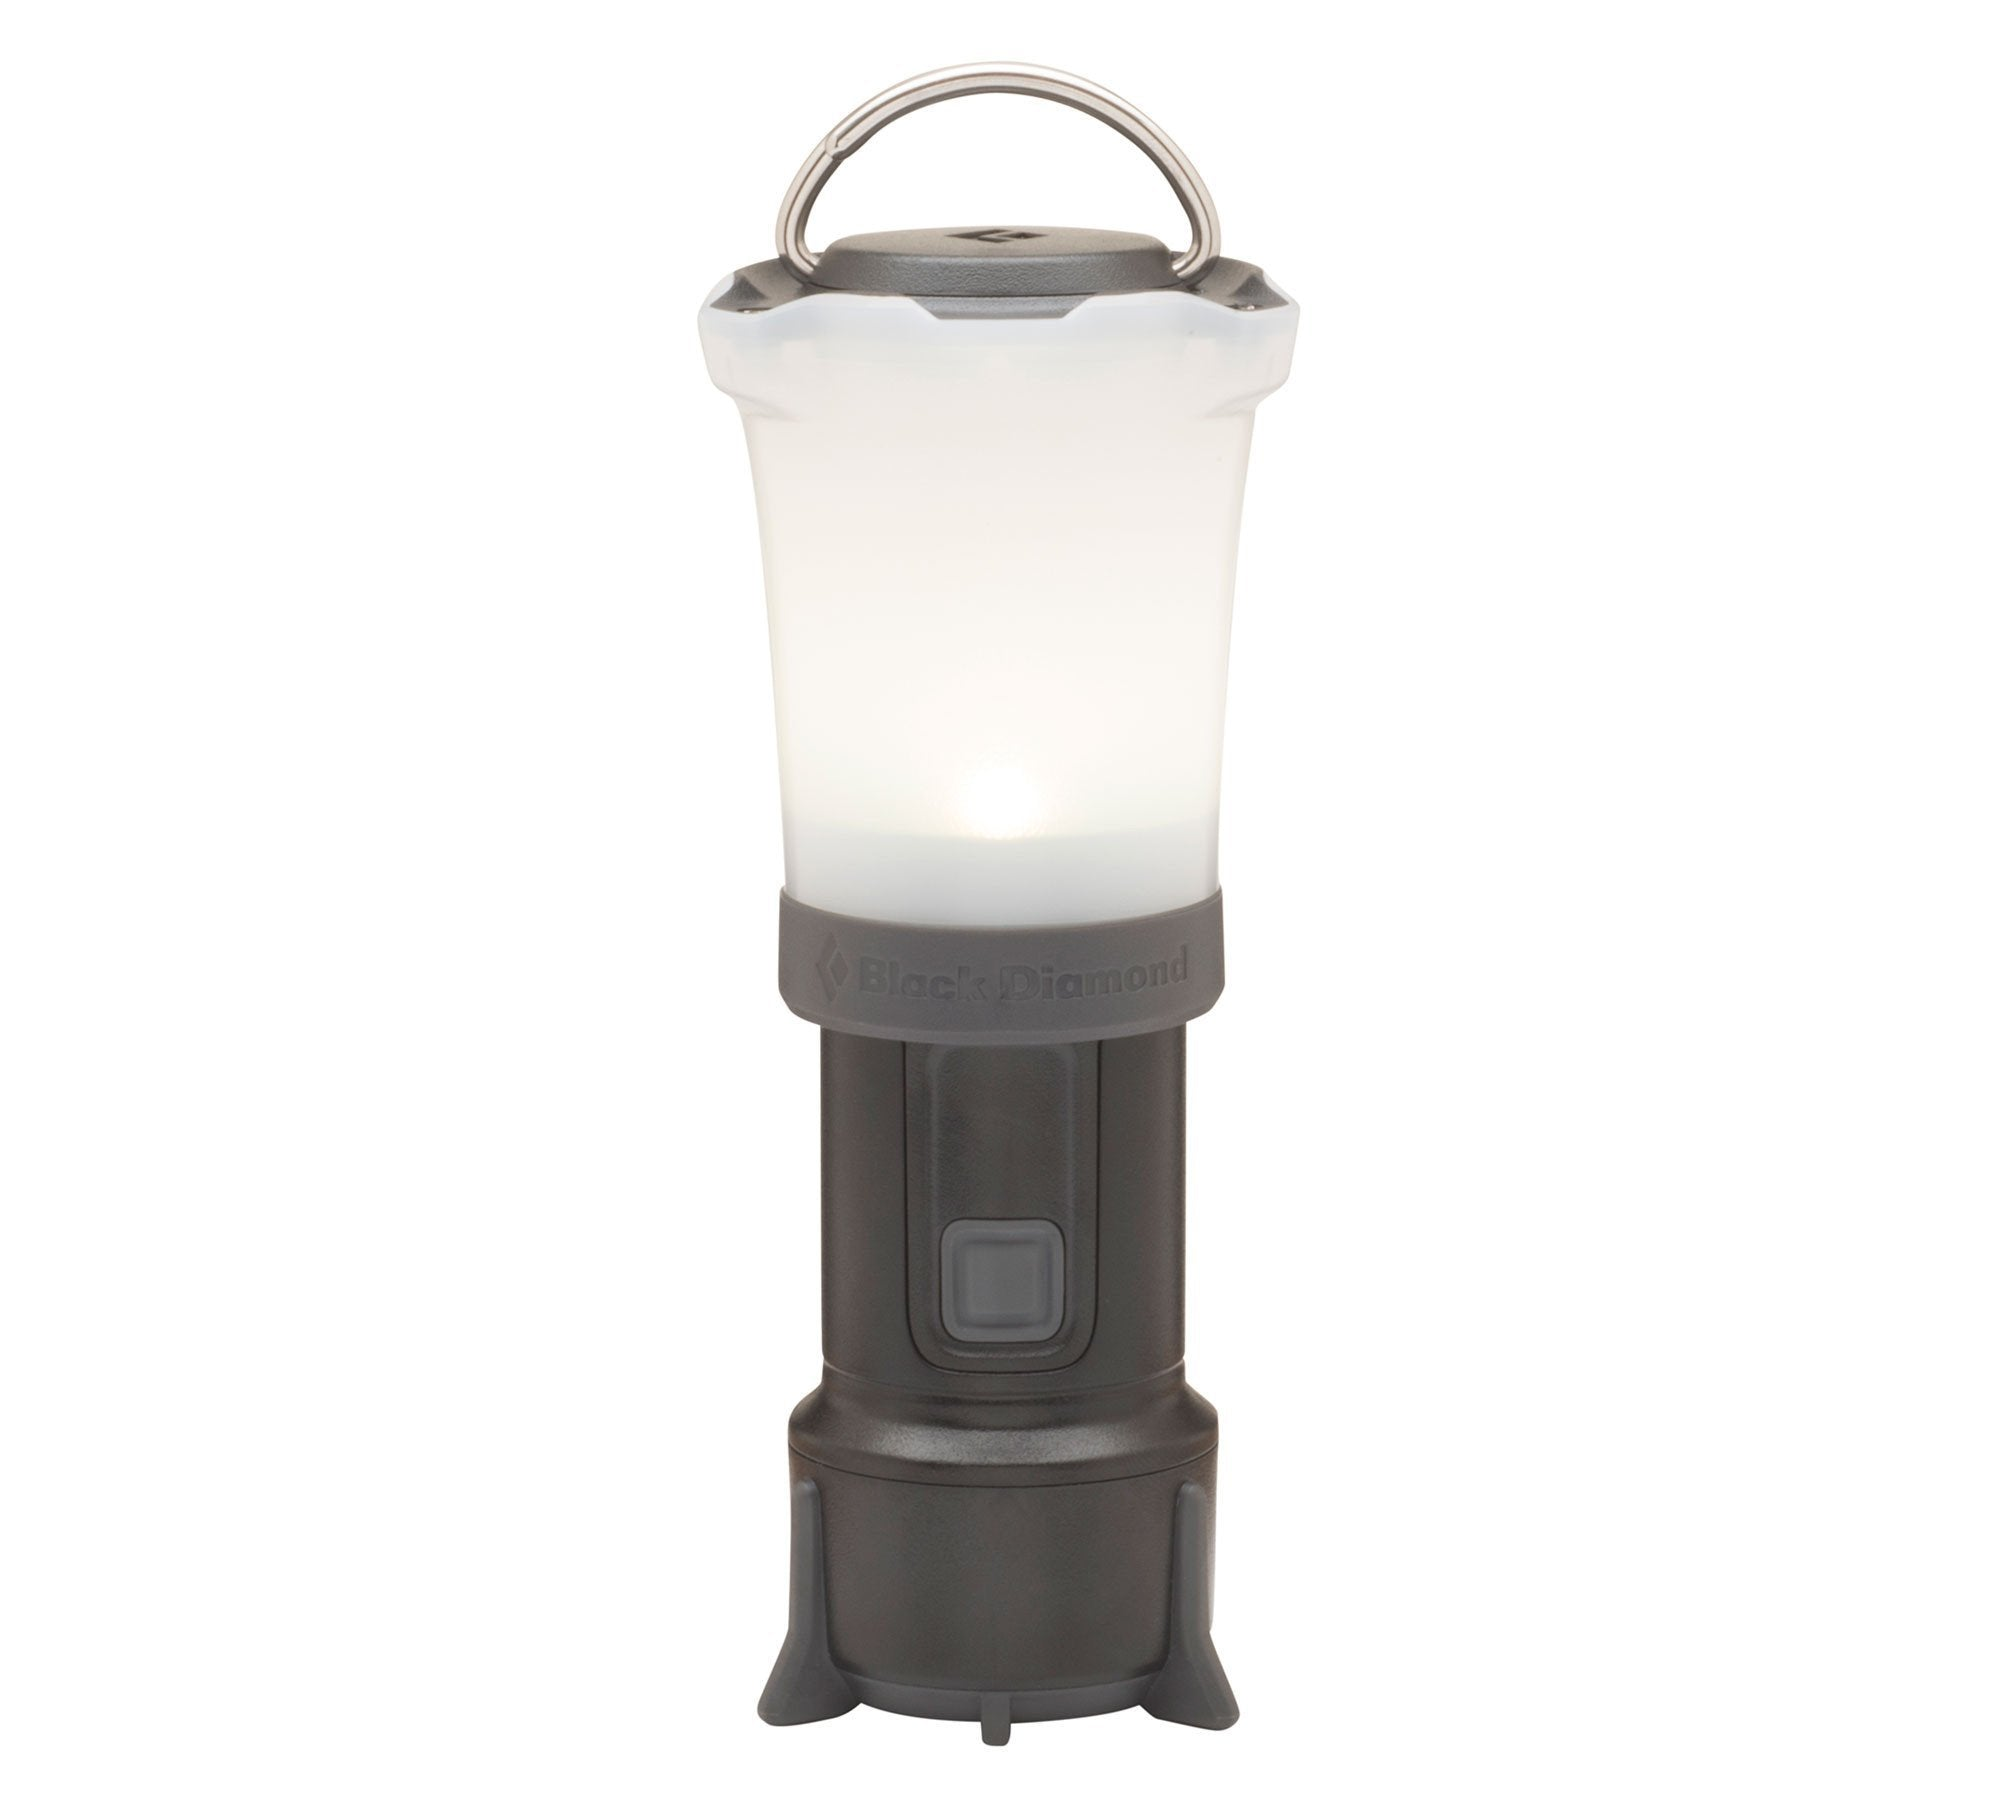 Black Diamond Orbit camping Lantern, in graphite/white colour shown stood up